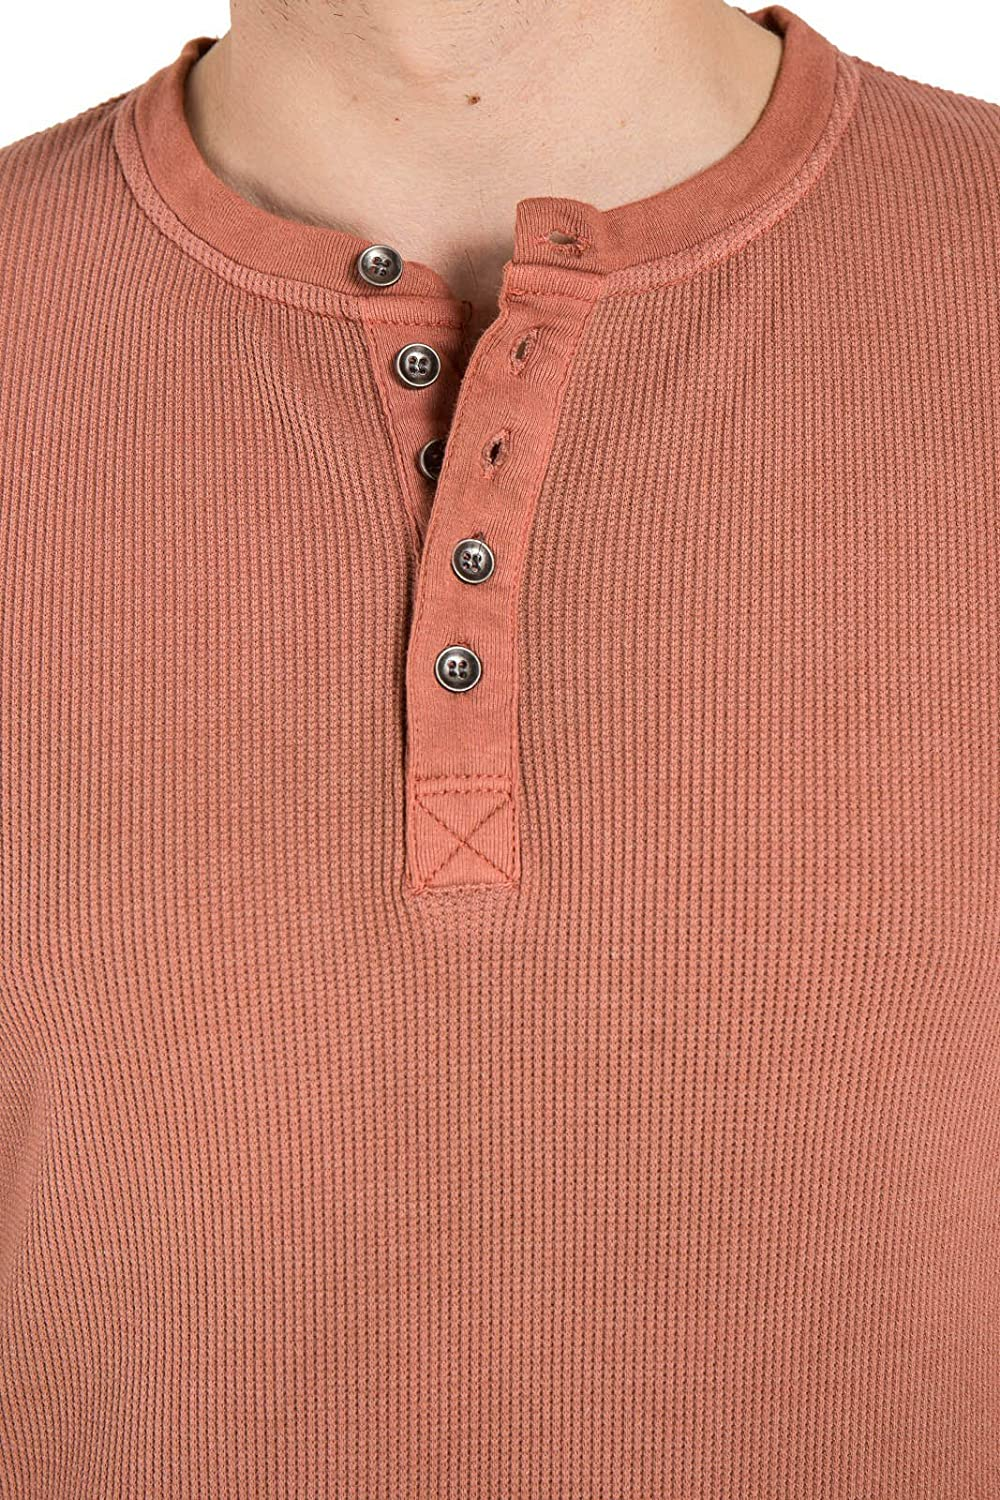 Stitchs Jeans Mens Henley Slim Long Sleeve Thermal Knit